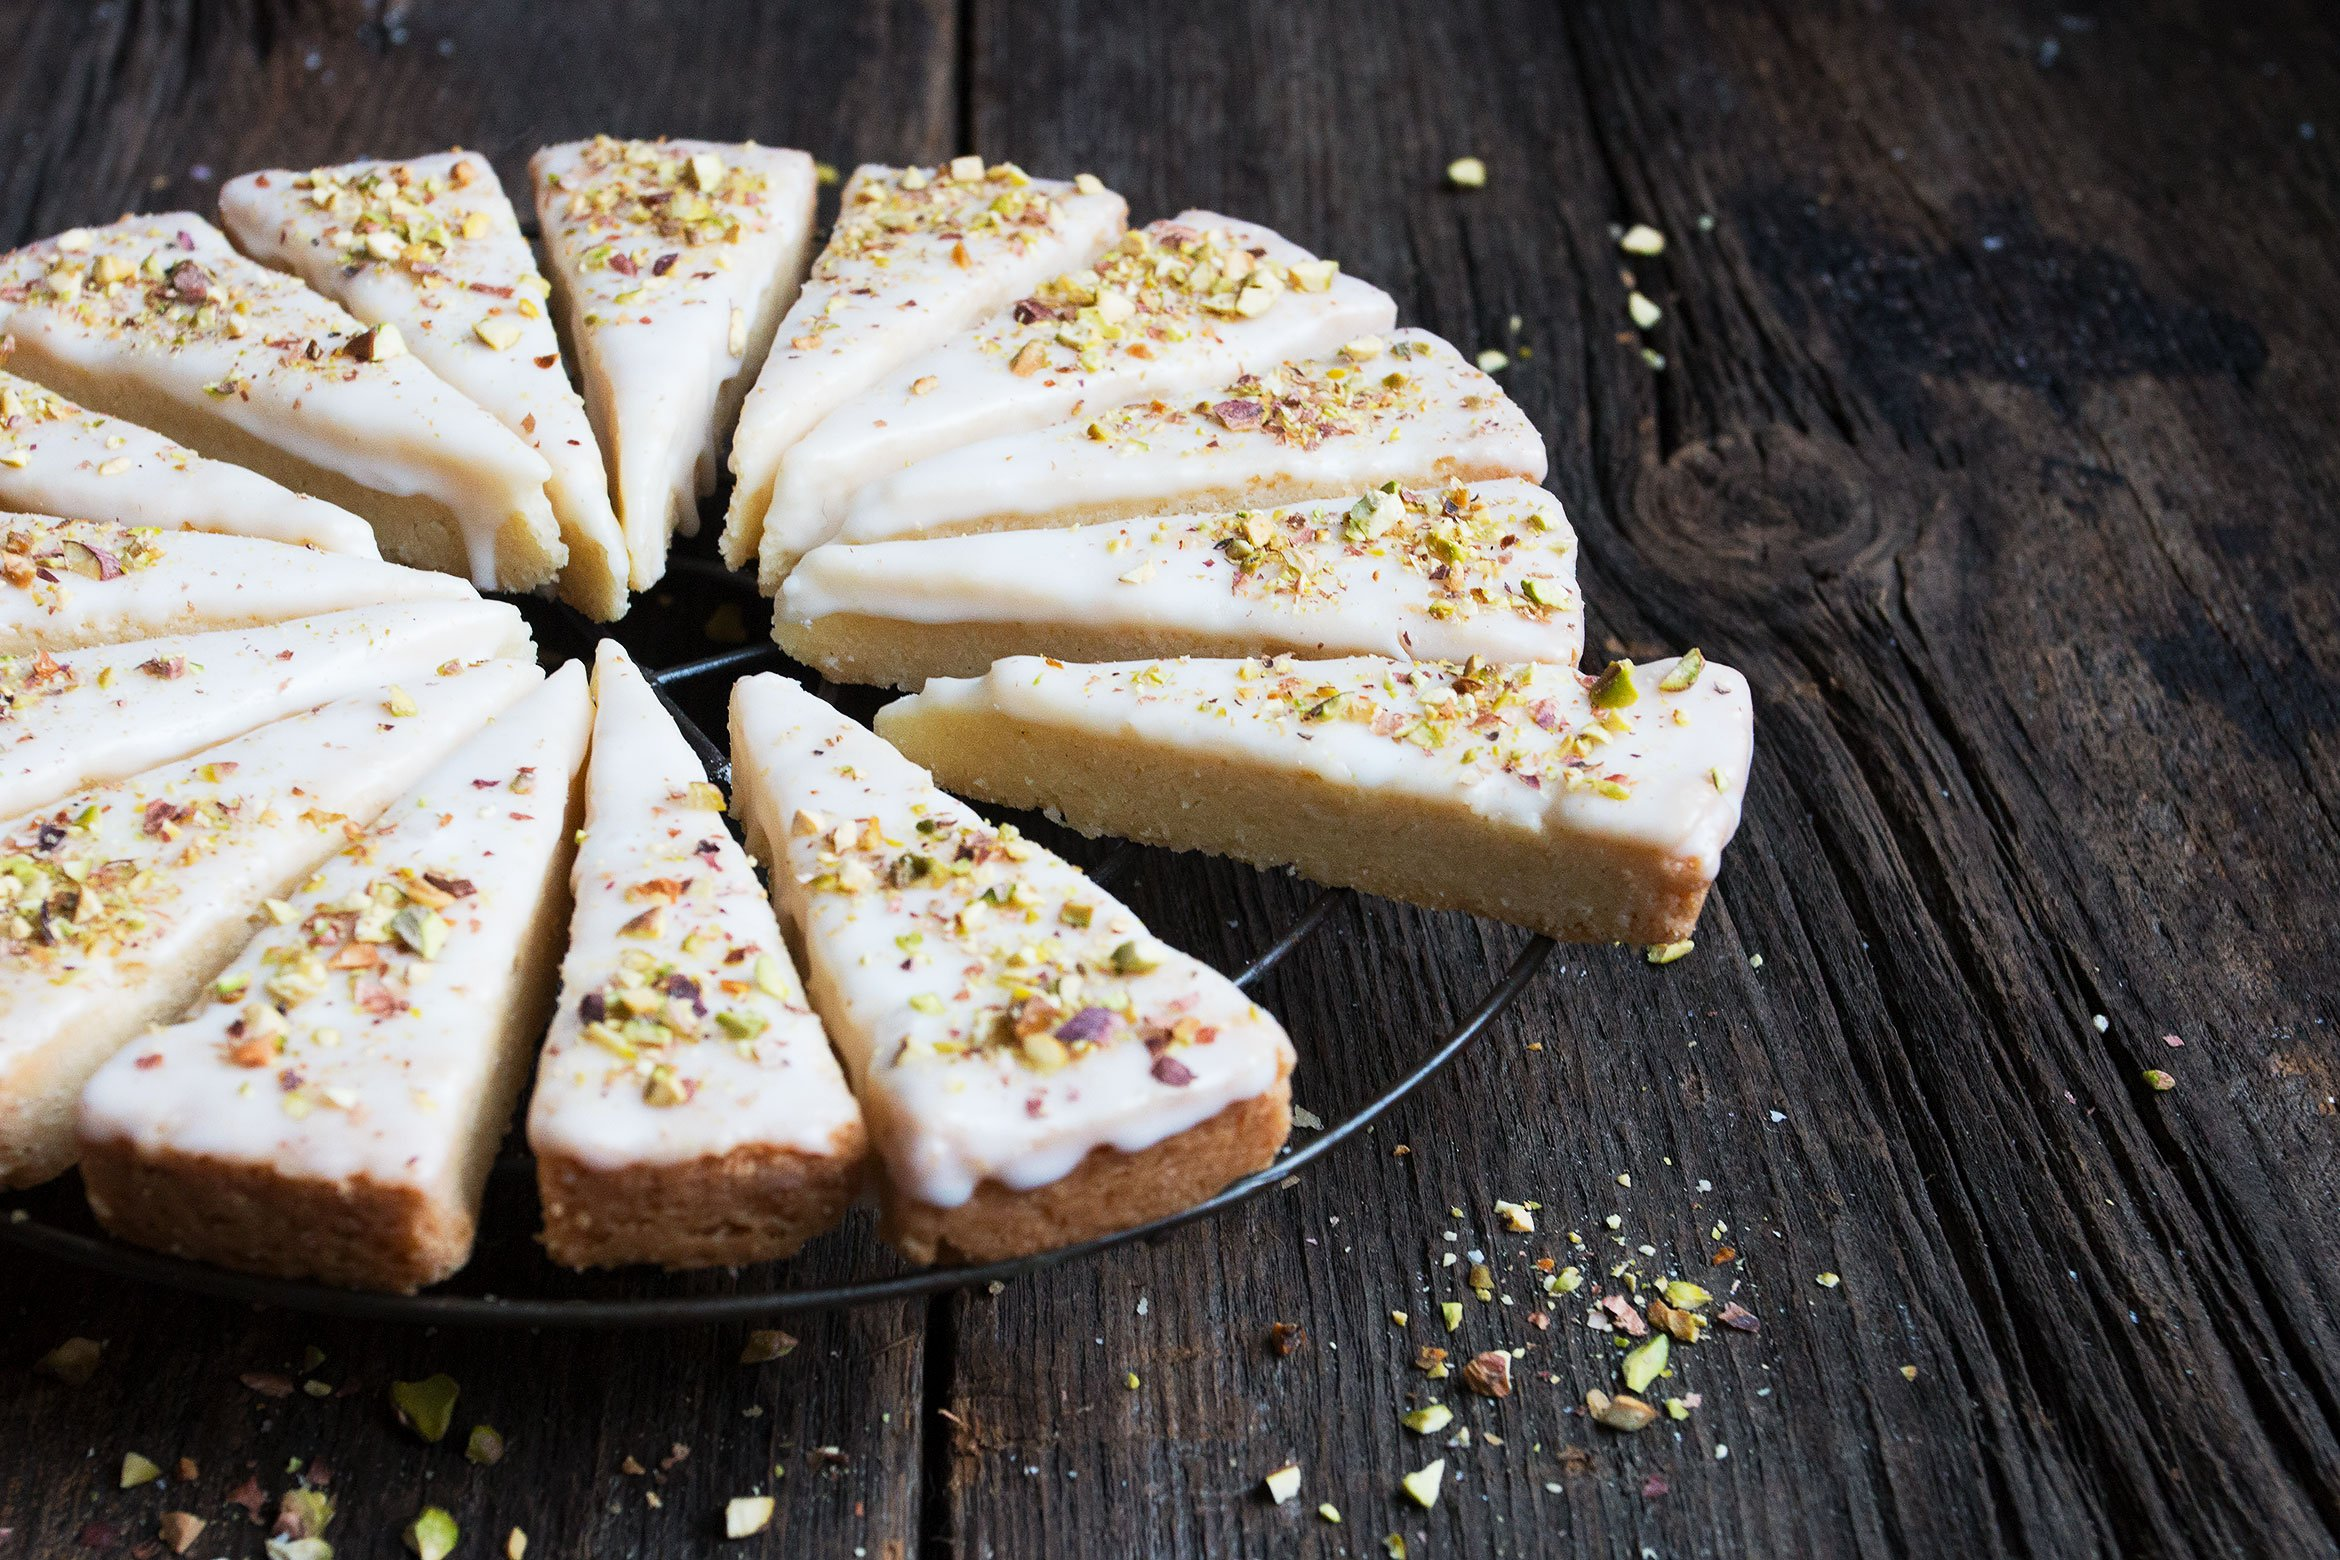 Lemon Pistachio Shortbread Cookies